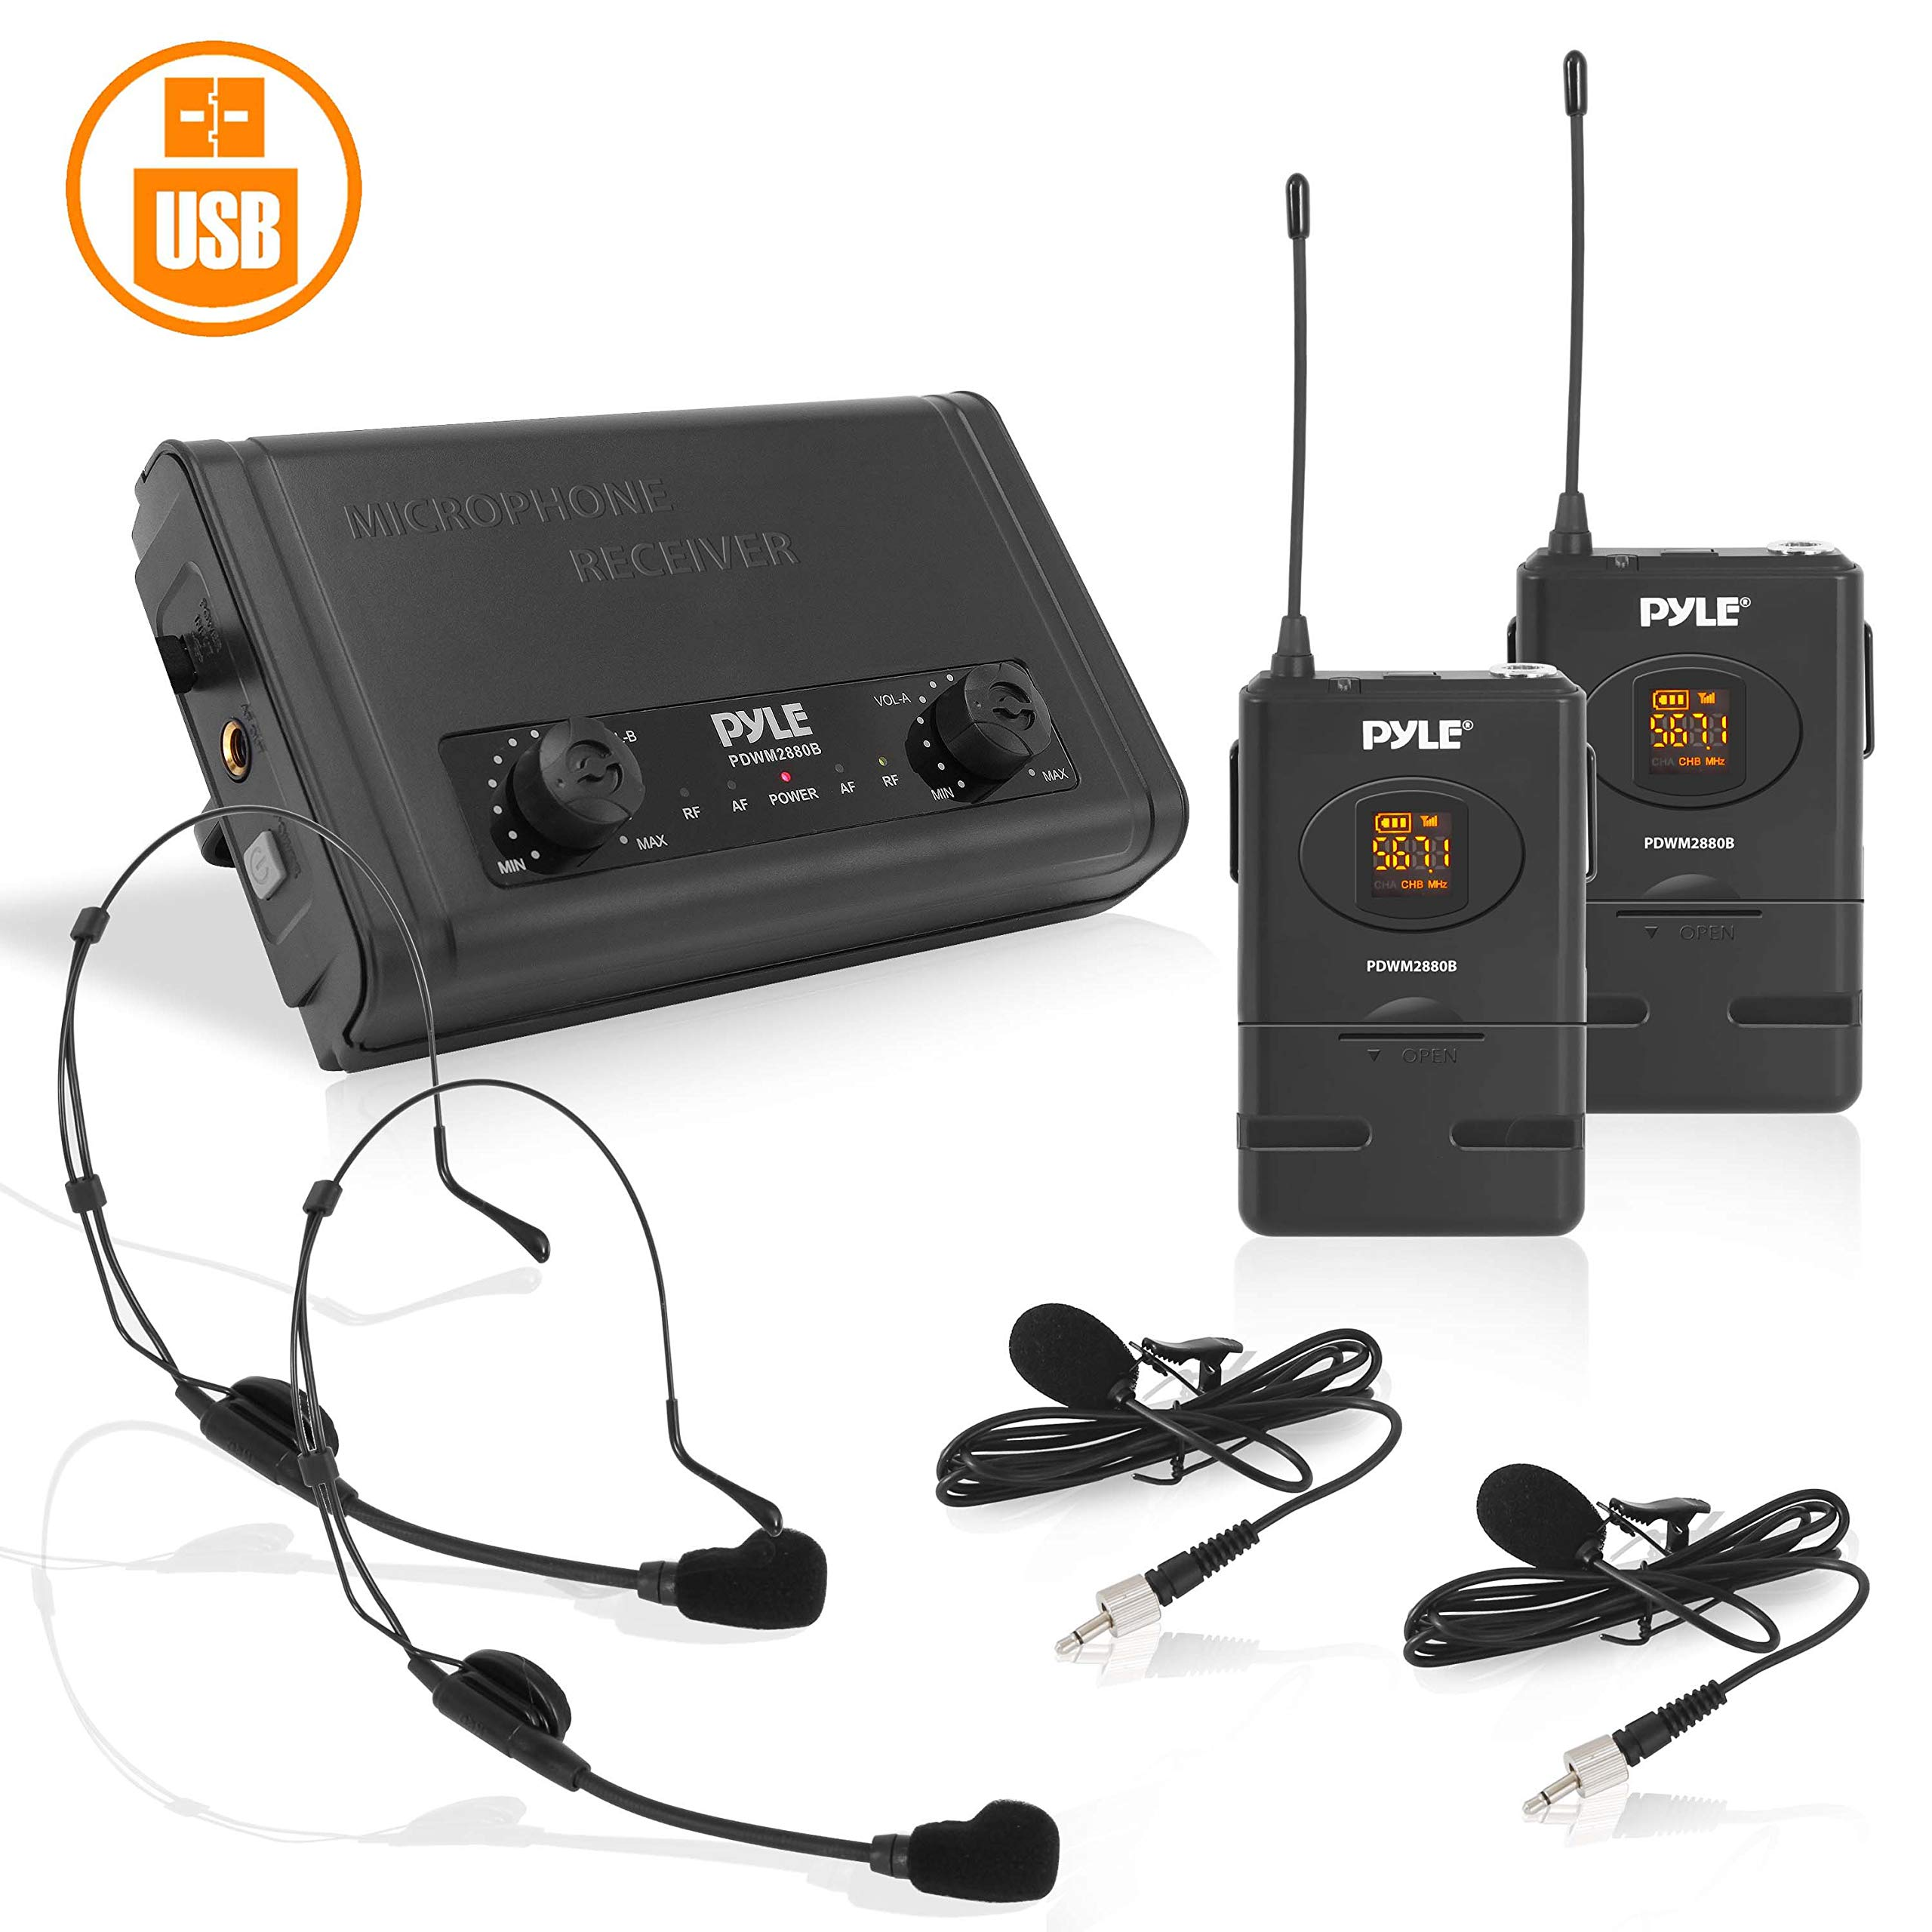 Compact UHF Wireless Microphone System - Pro Portable Dual Channel Desktop Digital Mic Receiver Set w/ 2 Belt-Pack Transmitter, Receiver, 2 Headset Lavalier Mics, Battery, For Home PA - Pyle PDWM2880B by Pyle